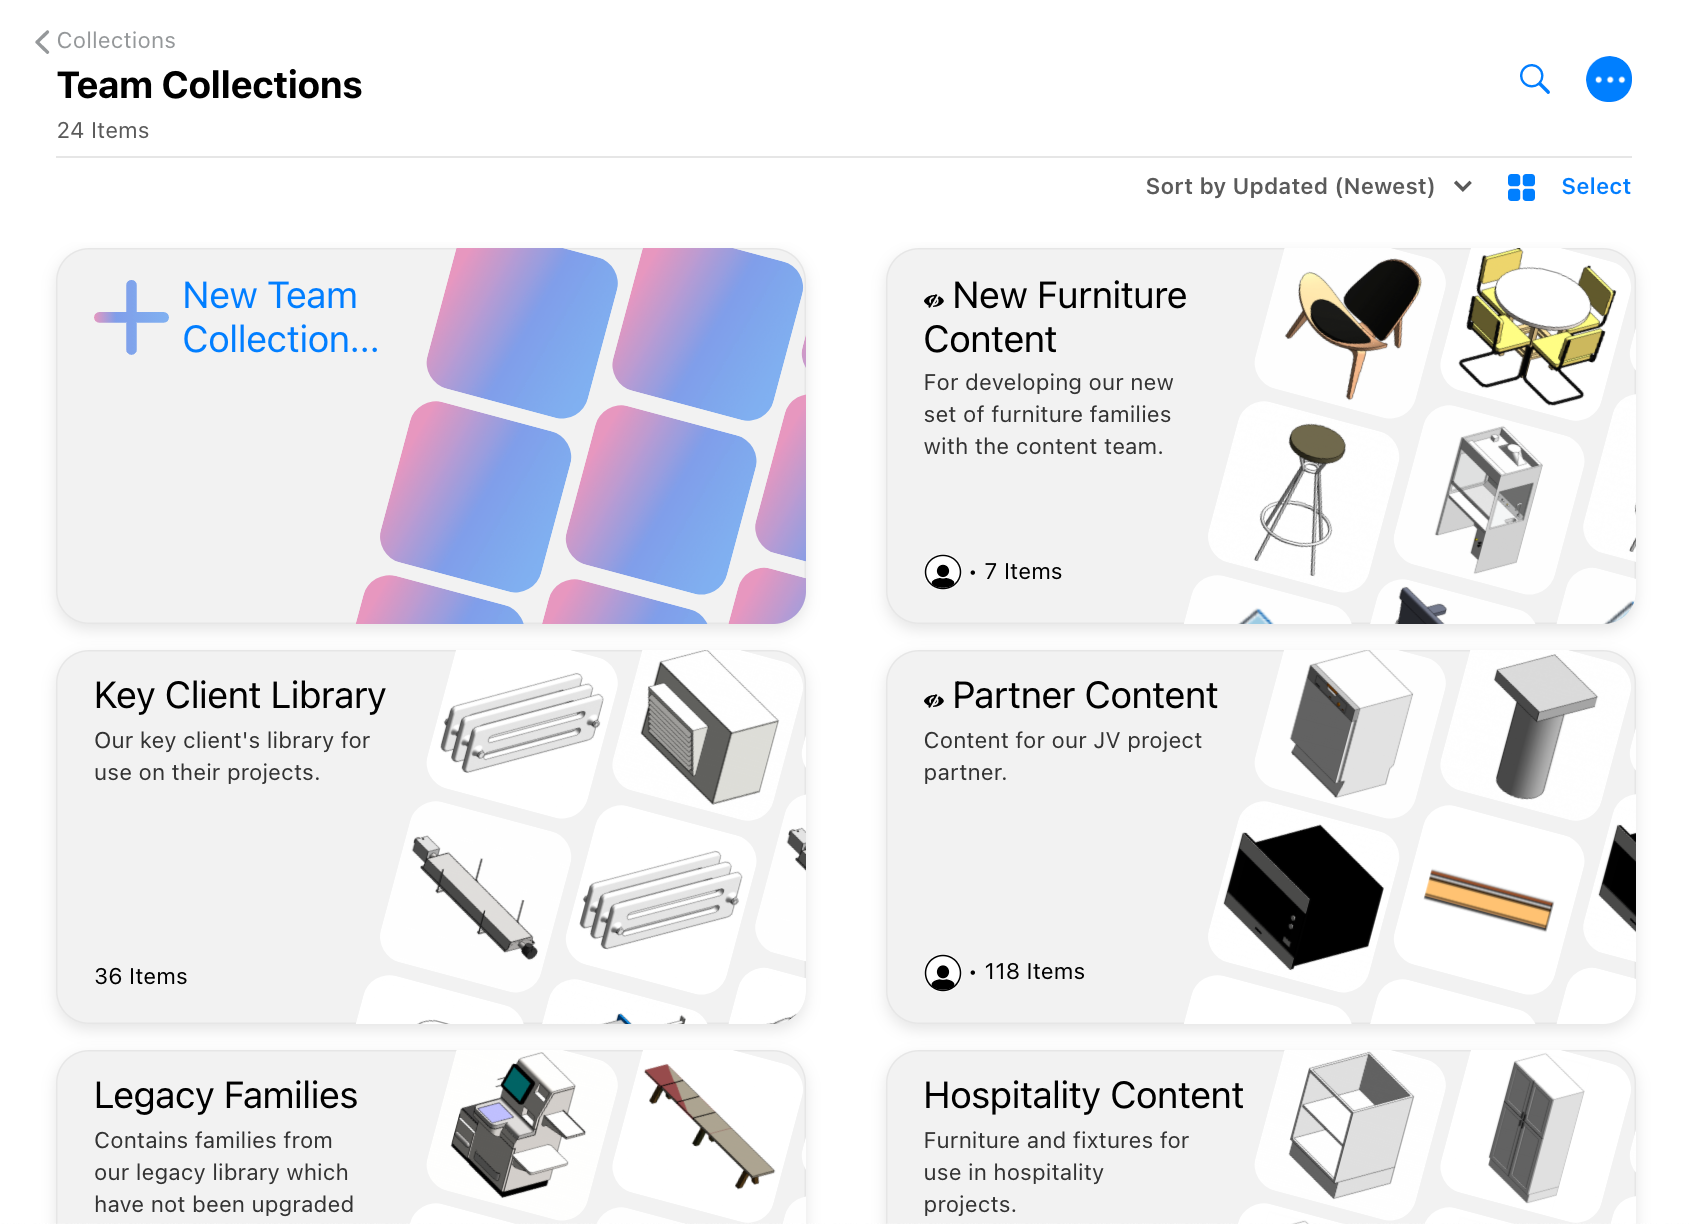 Team Collections landing page in Kinship.